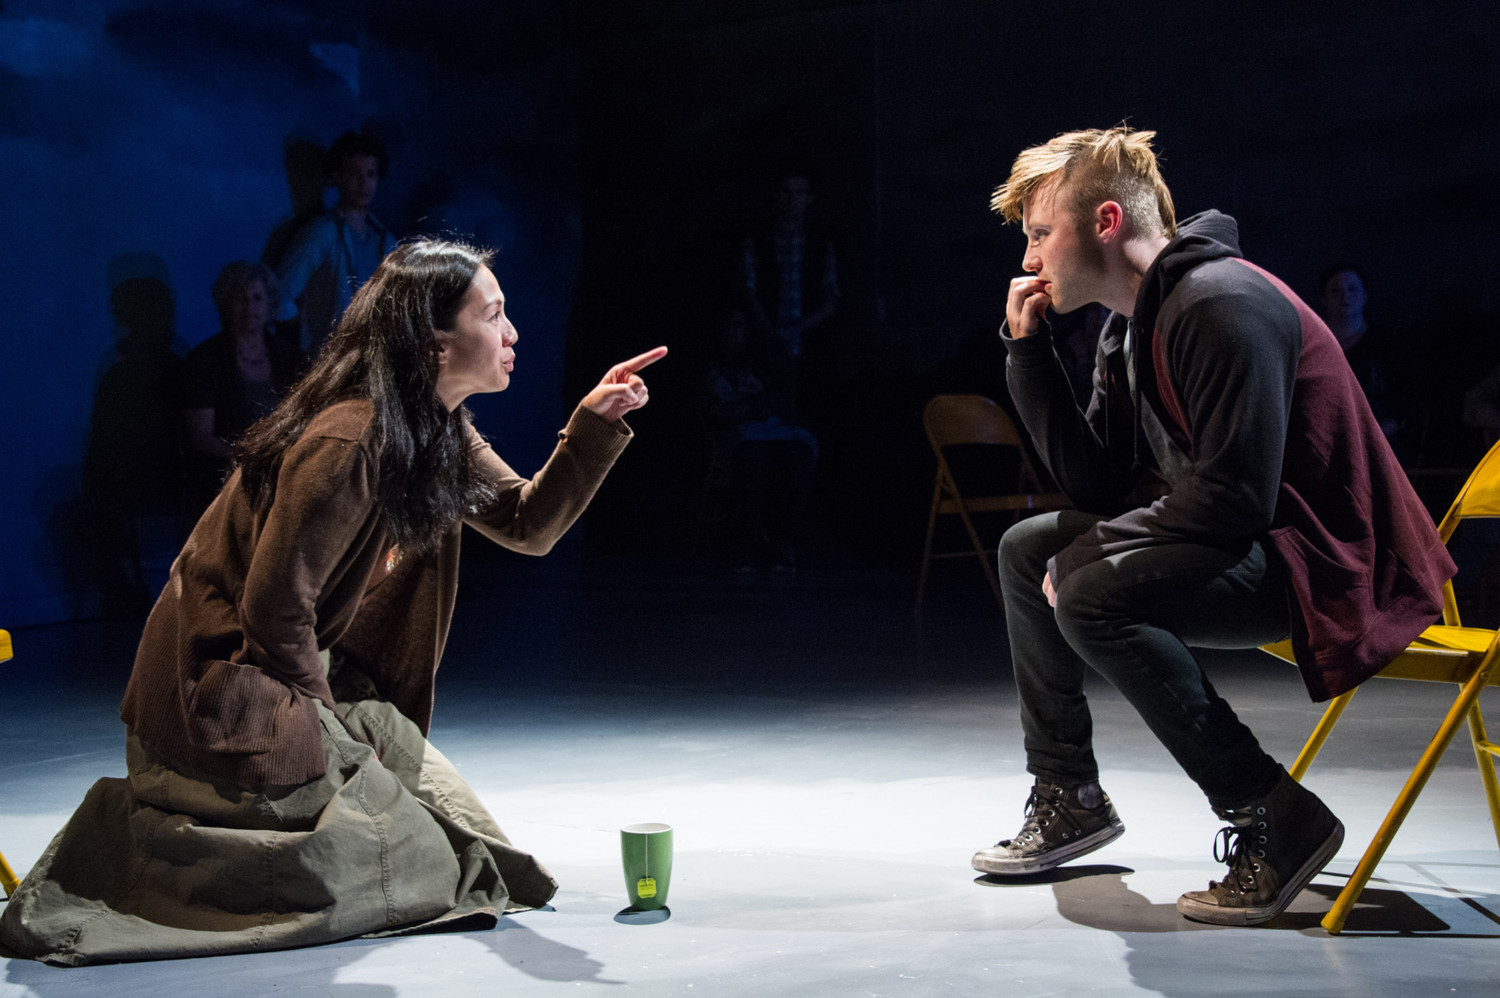 BWW Review: THE EVENTS at Theater Alliance is Poignant but Imperfect